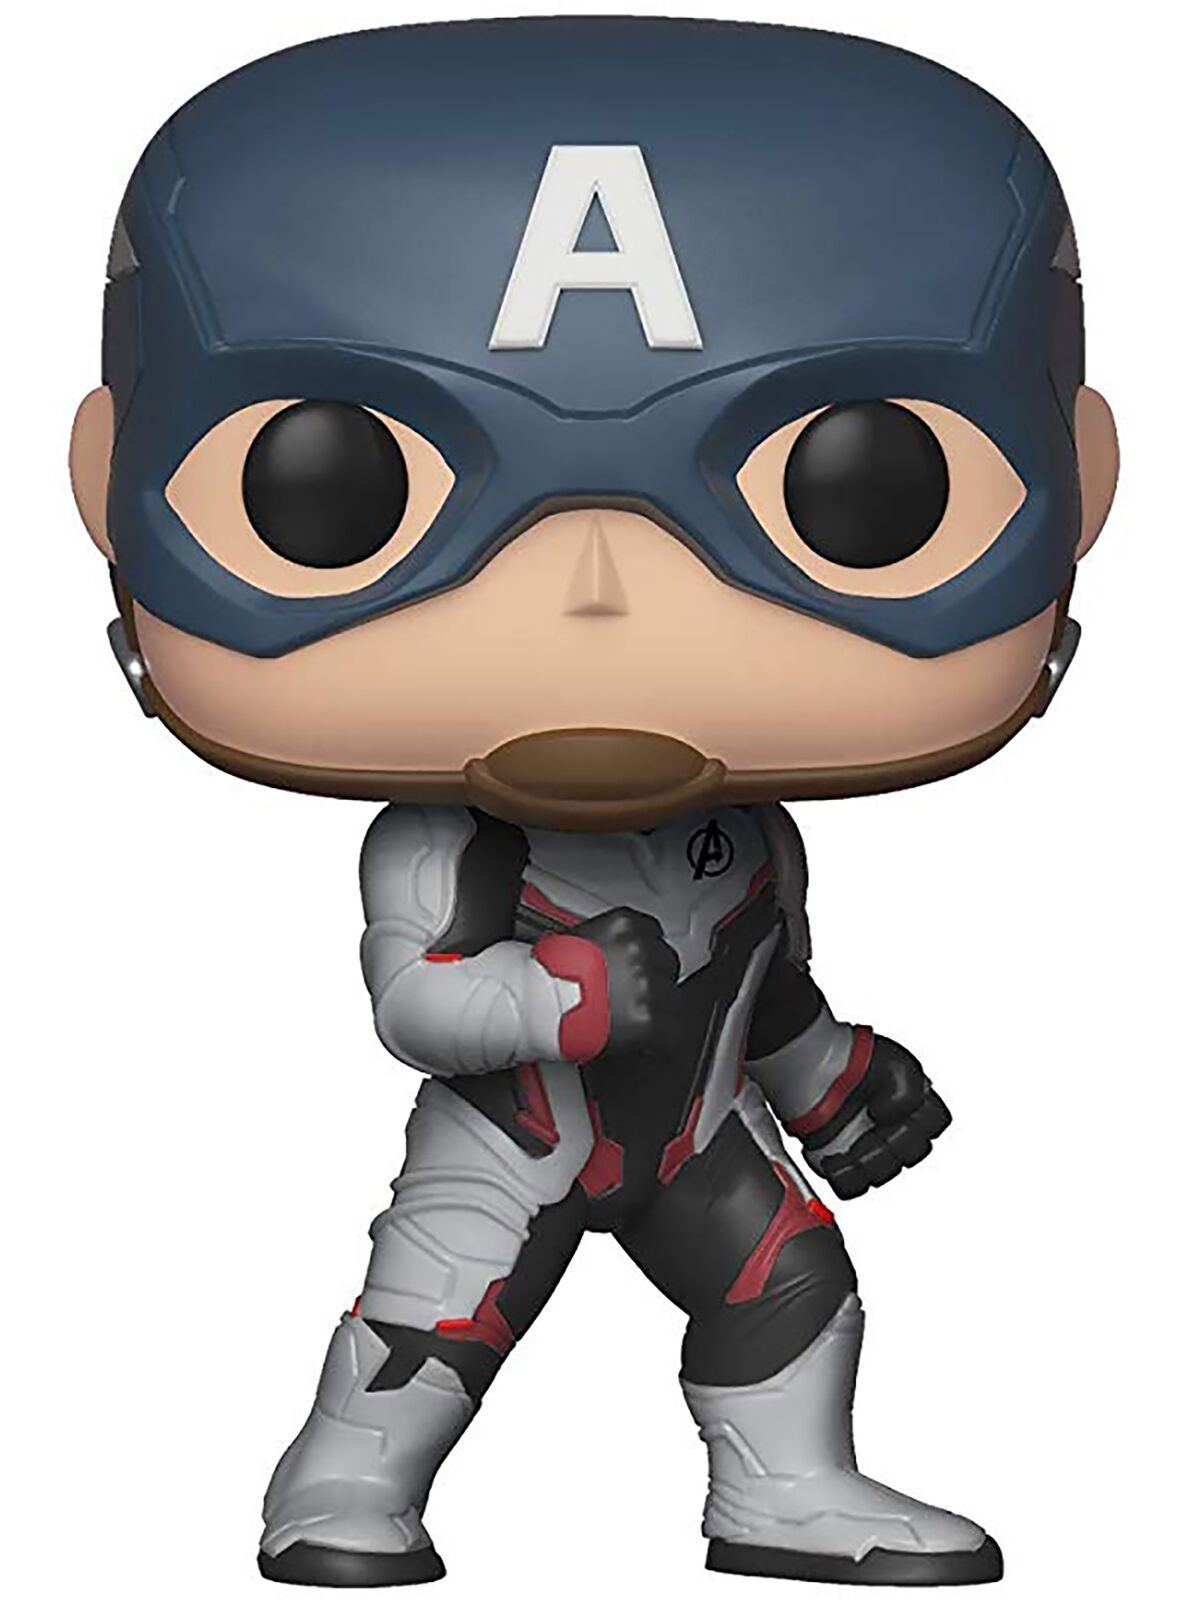 Funko-Endgame-Pop-Marvel-Avengers-Endgame-Vinyl-Collectables-Figures thumbnail 9